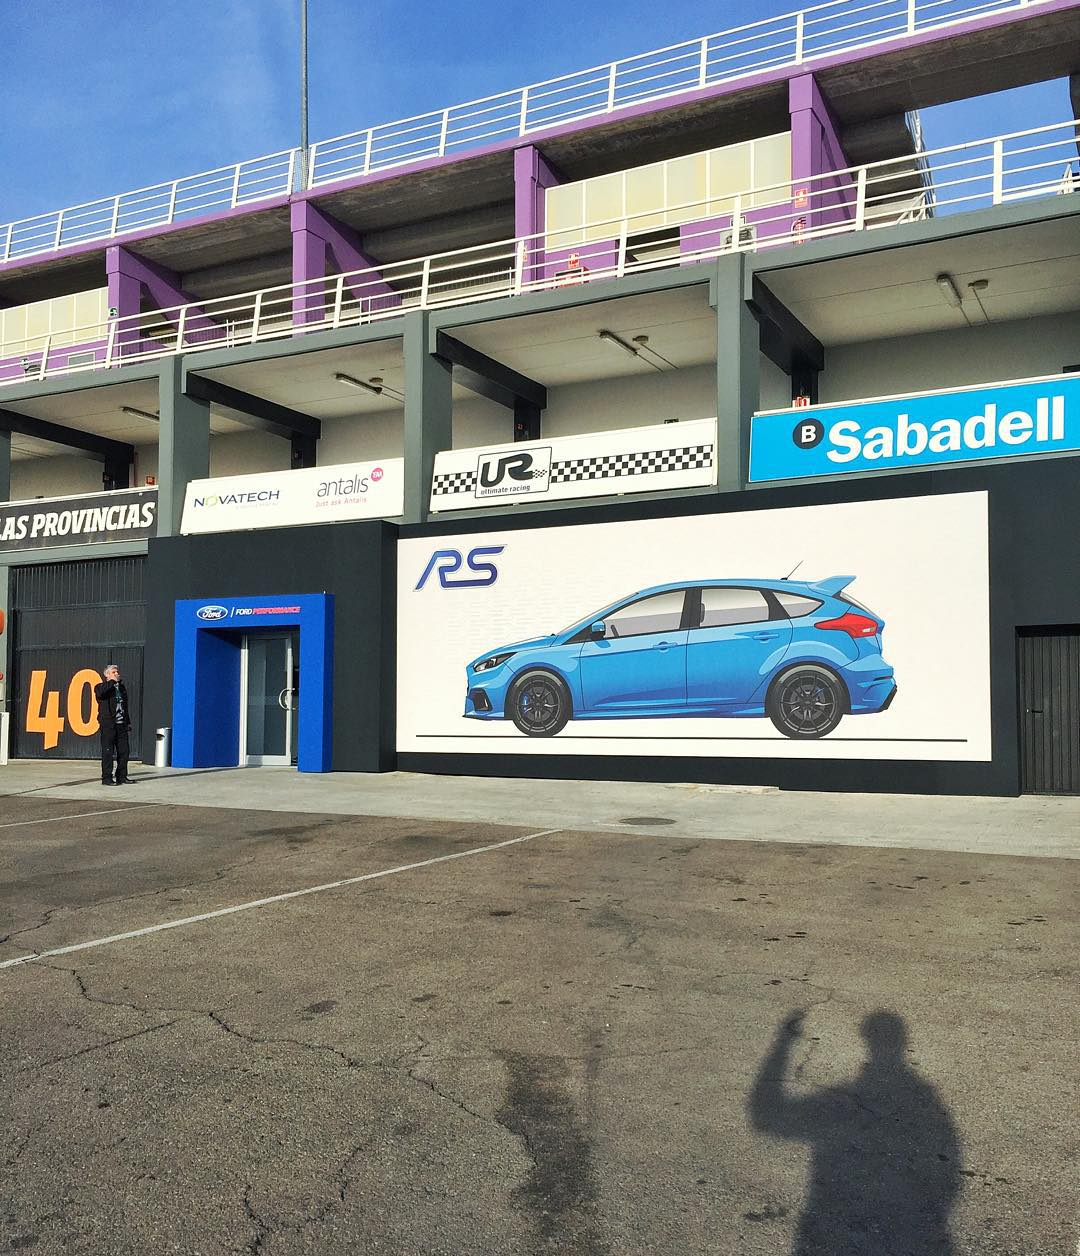 Good morning (buenos dais for the locals) from The Circuit Valencia. I'm about to get some seat time on track here with the new Ford Focus RS. Not mad about that! #riseandslide #FocusRS #driftmodedriftmodedriftmode